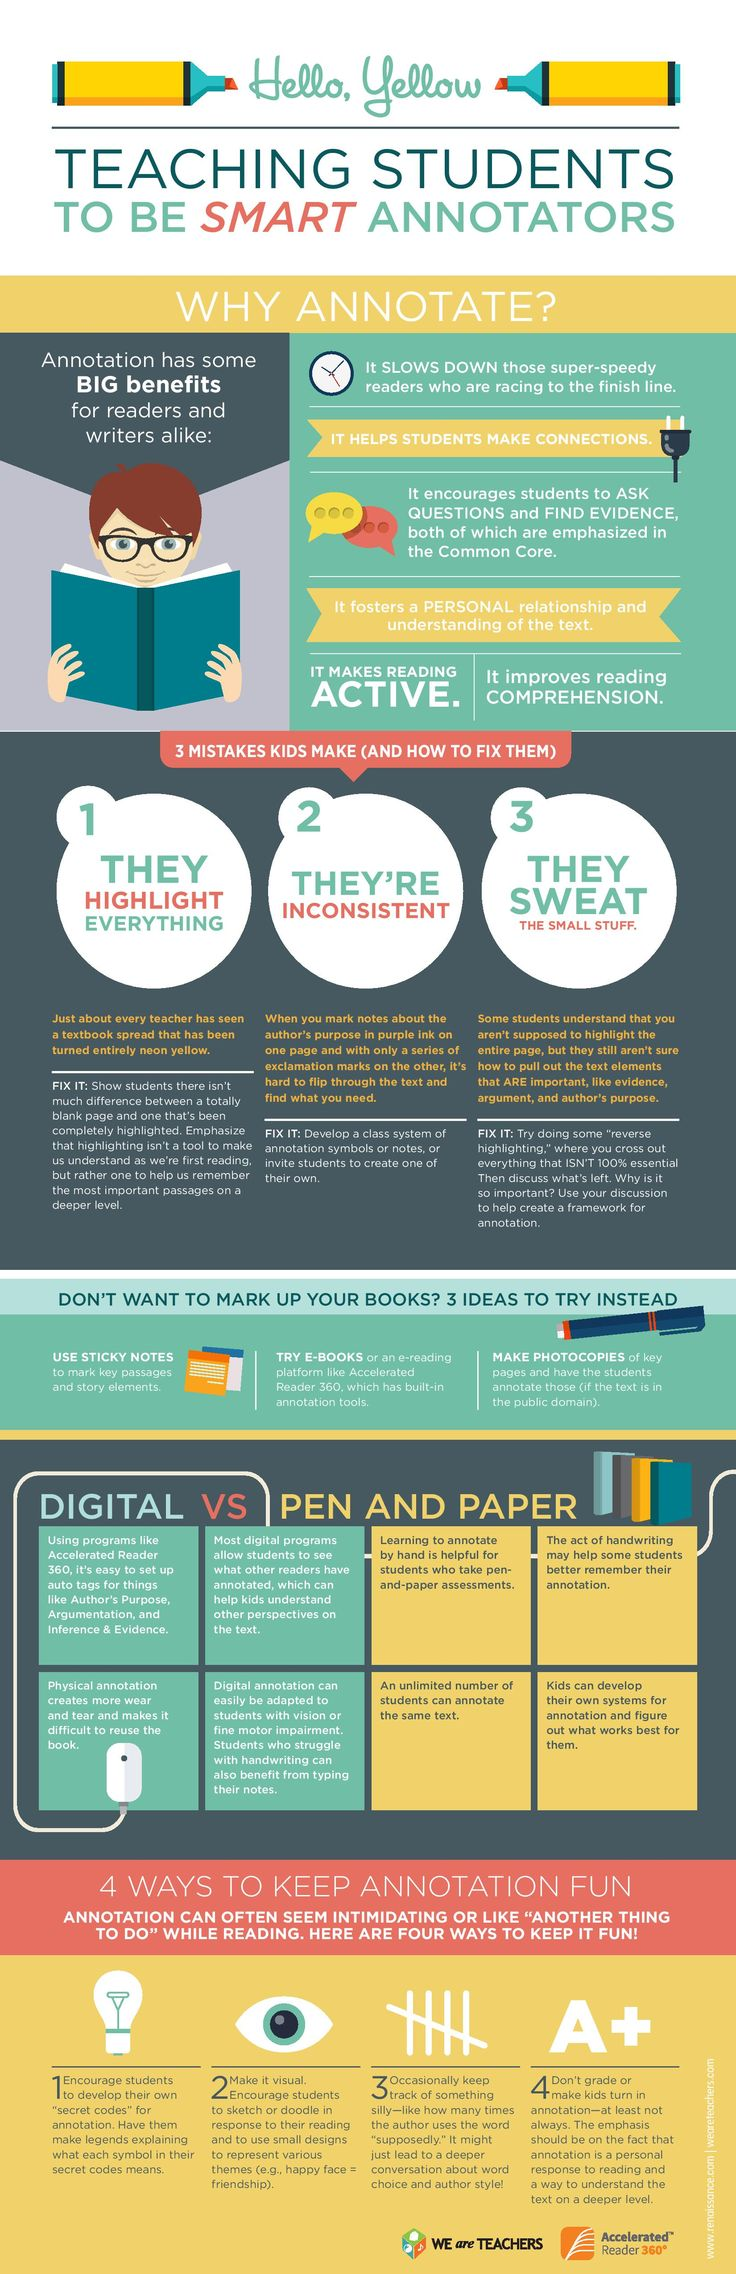 teaching students to be better annotators infographic